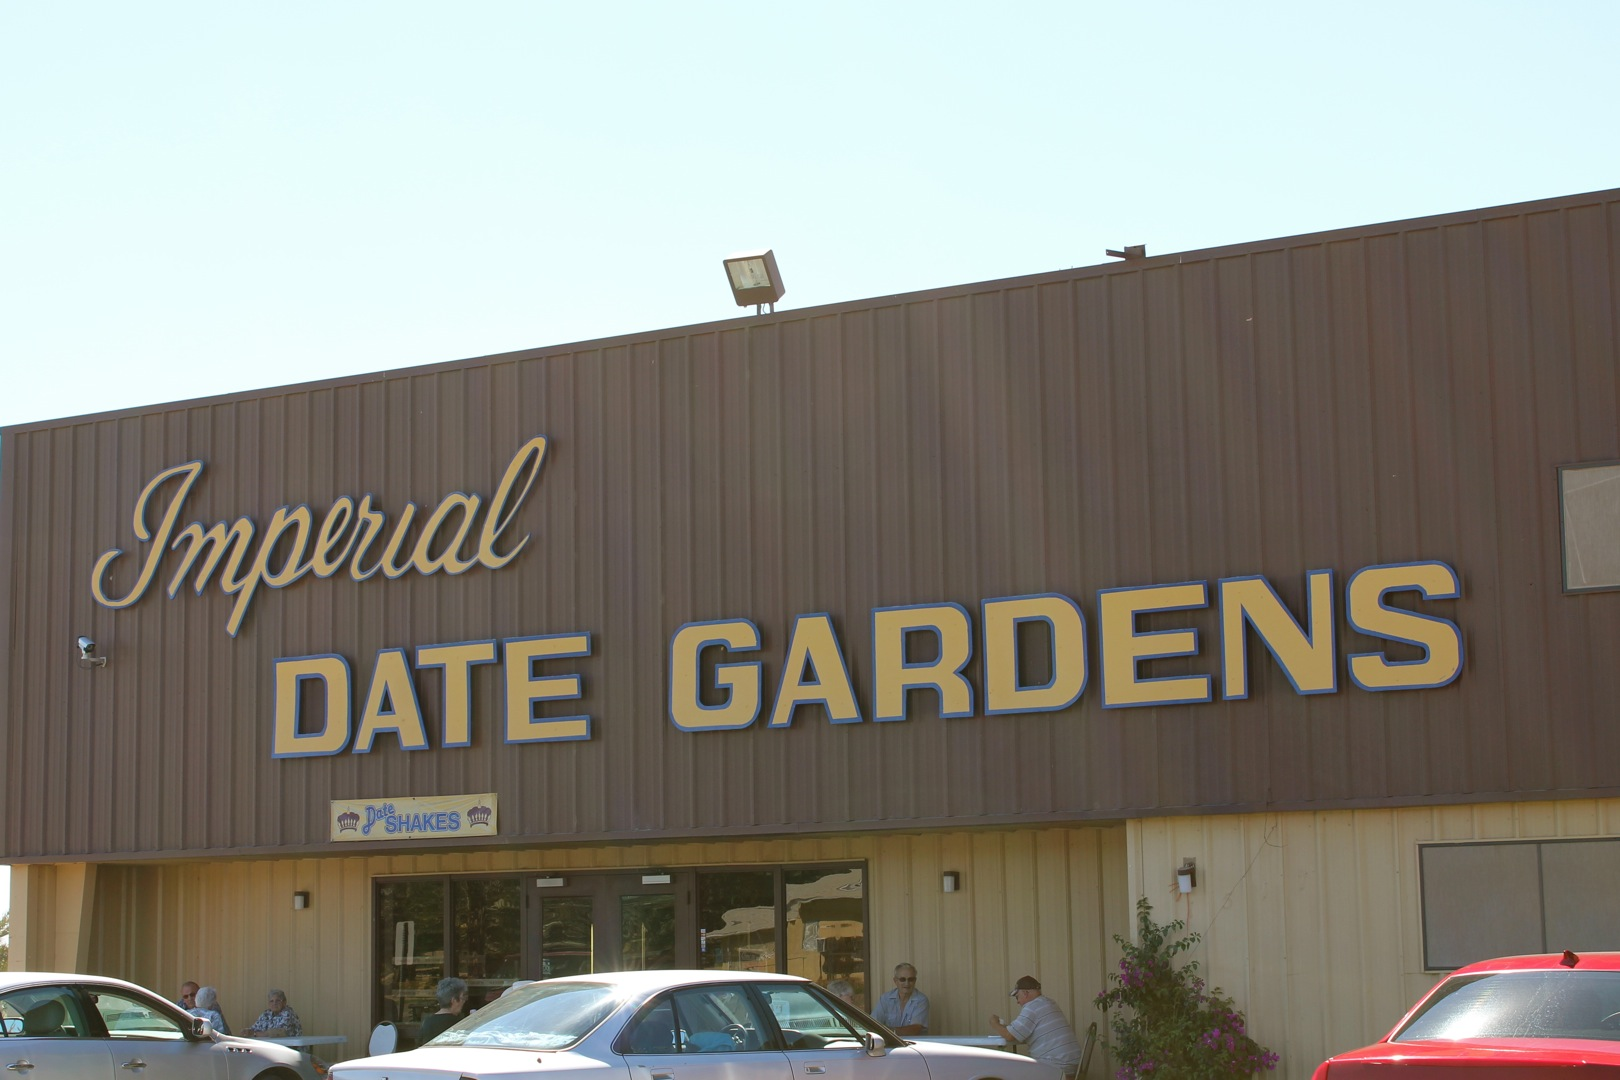 garden valley dating Personal ads for garden valley, id are a great way to find a life partner, movie date, or a quick hookup personals are for people local to garden valley, id and are for ages 18+ of either.